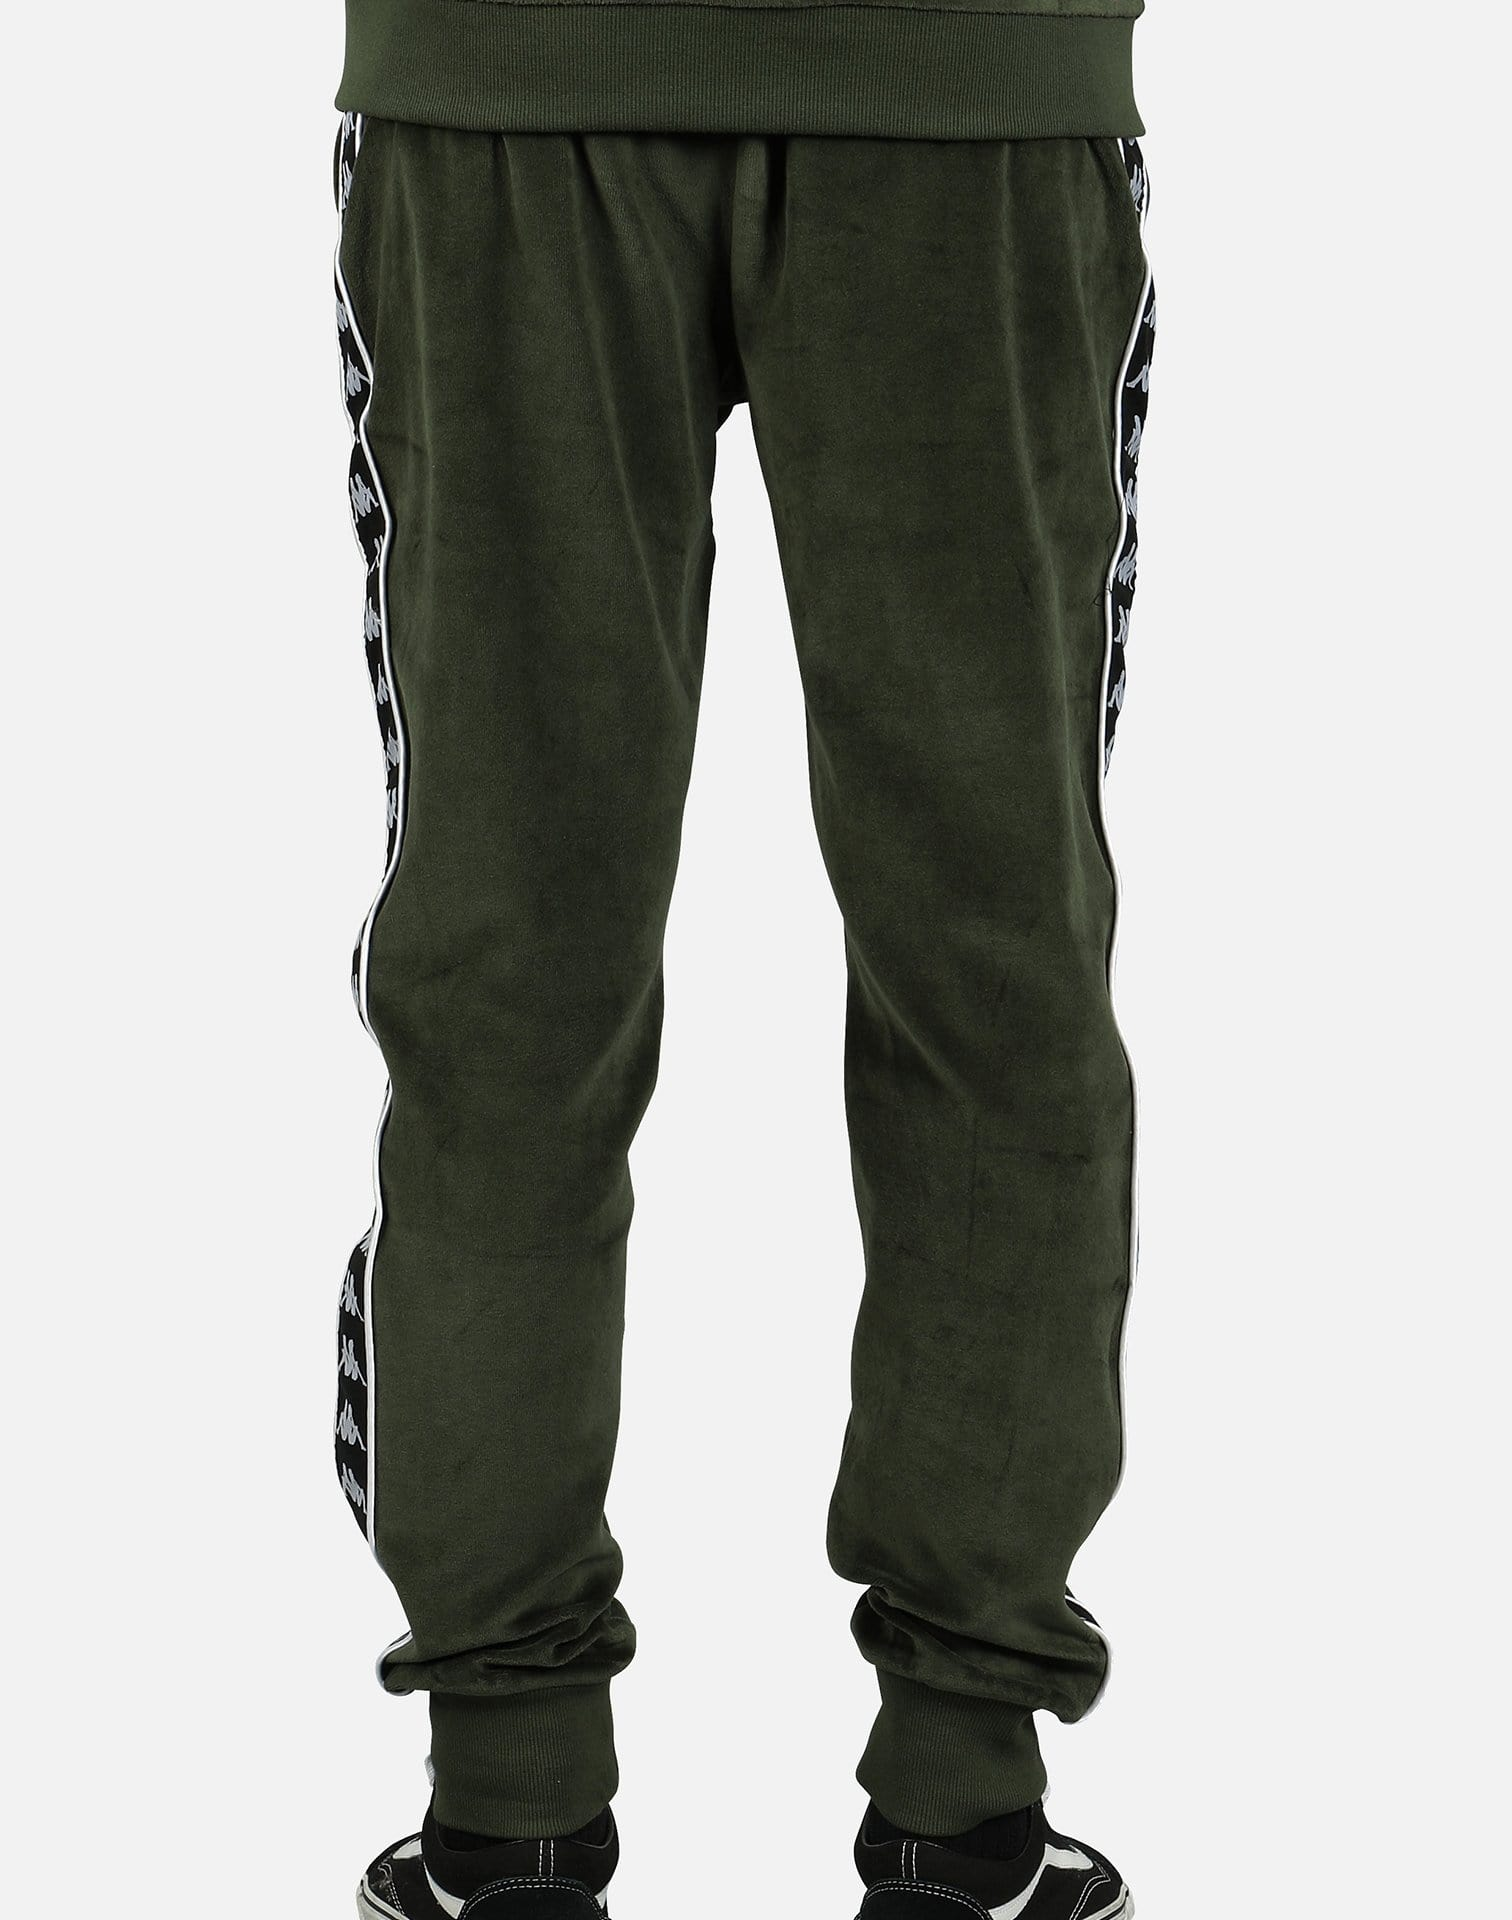 Kappa Men's Authentic Ayne Velour Pants